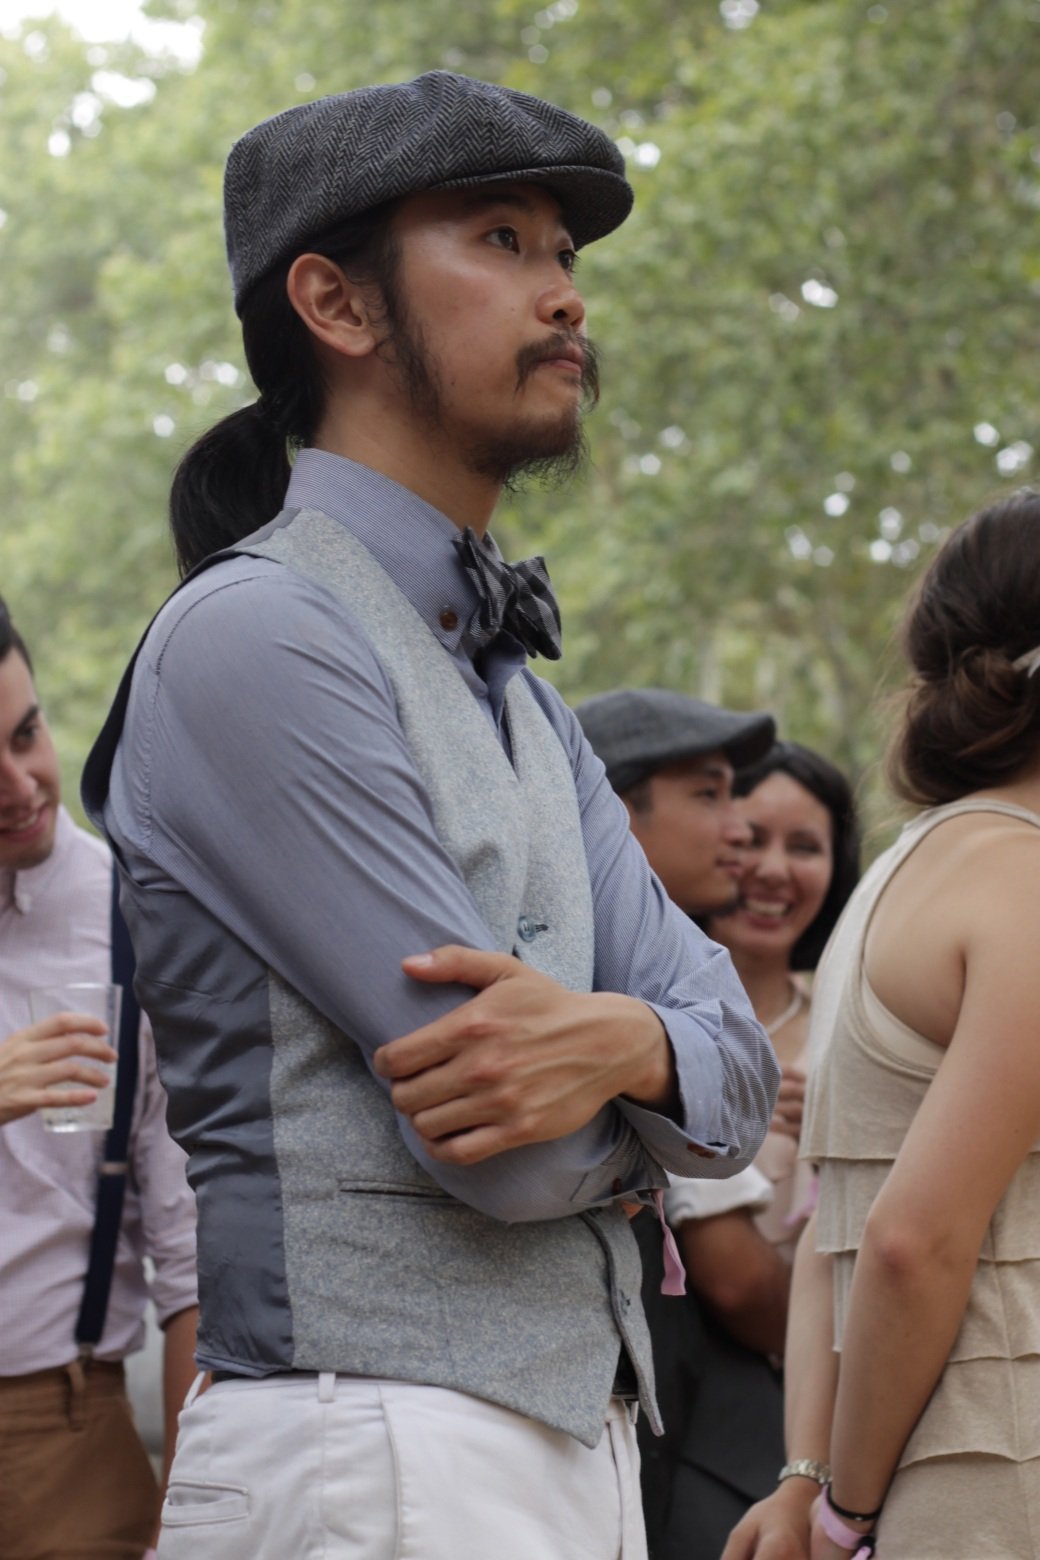 new york city governors island jazz age lawn party august 17 2014 86